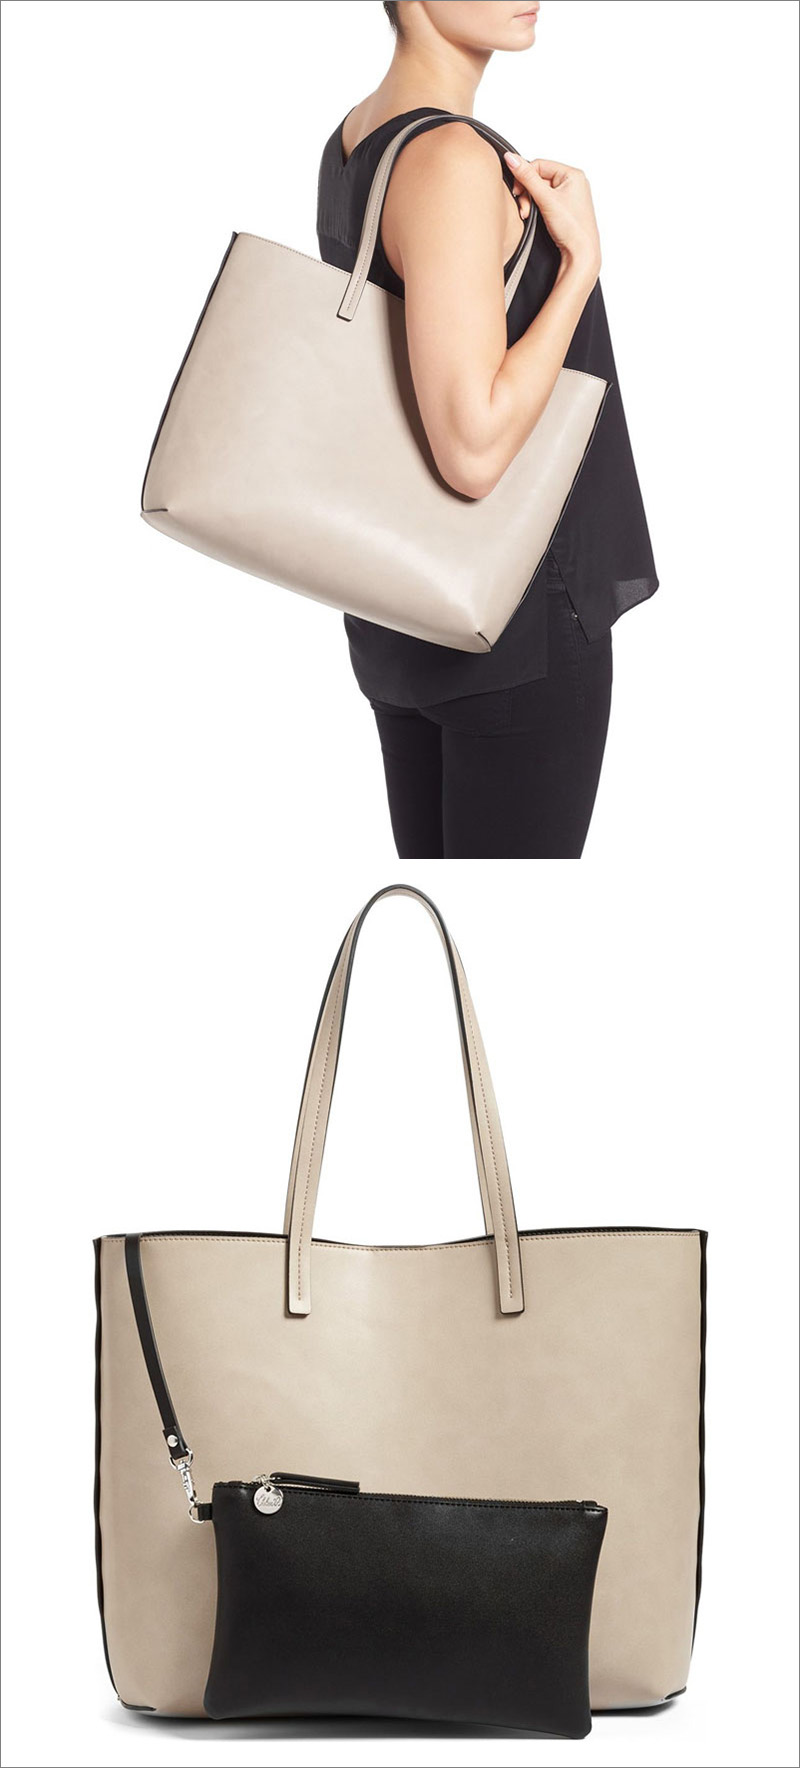 This minimalist light colored faux leather tote comes with a small black modern zip up pouch to tuck inside.